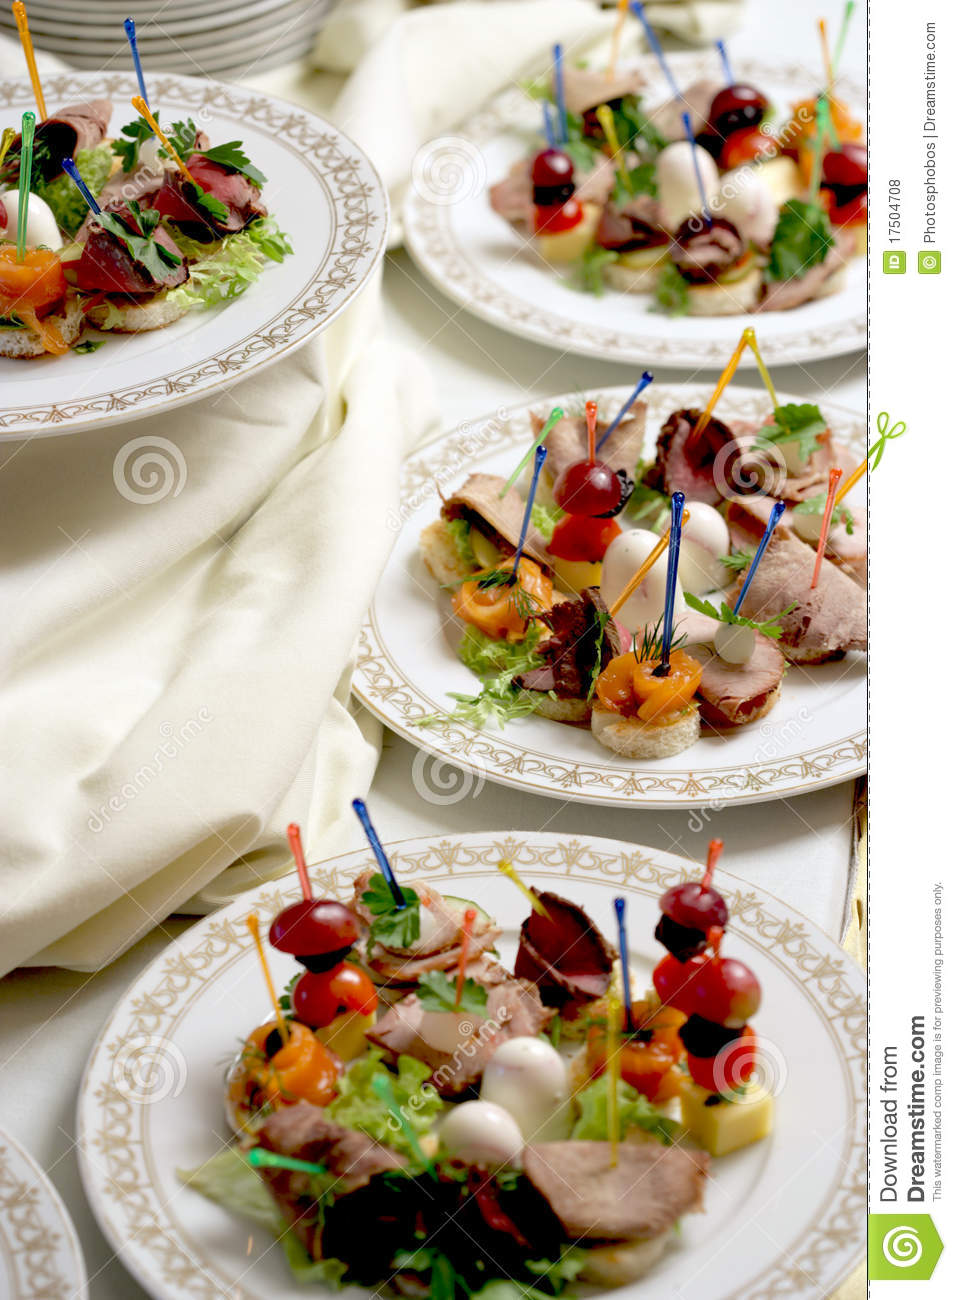 Canape on a plates royalty free stock photos image 17504708 for What are canape plates